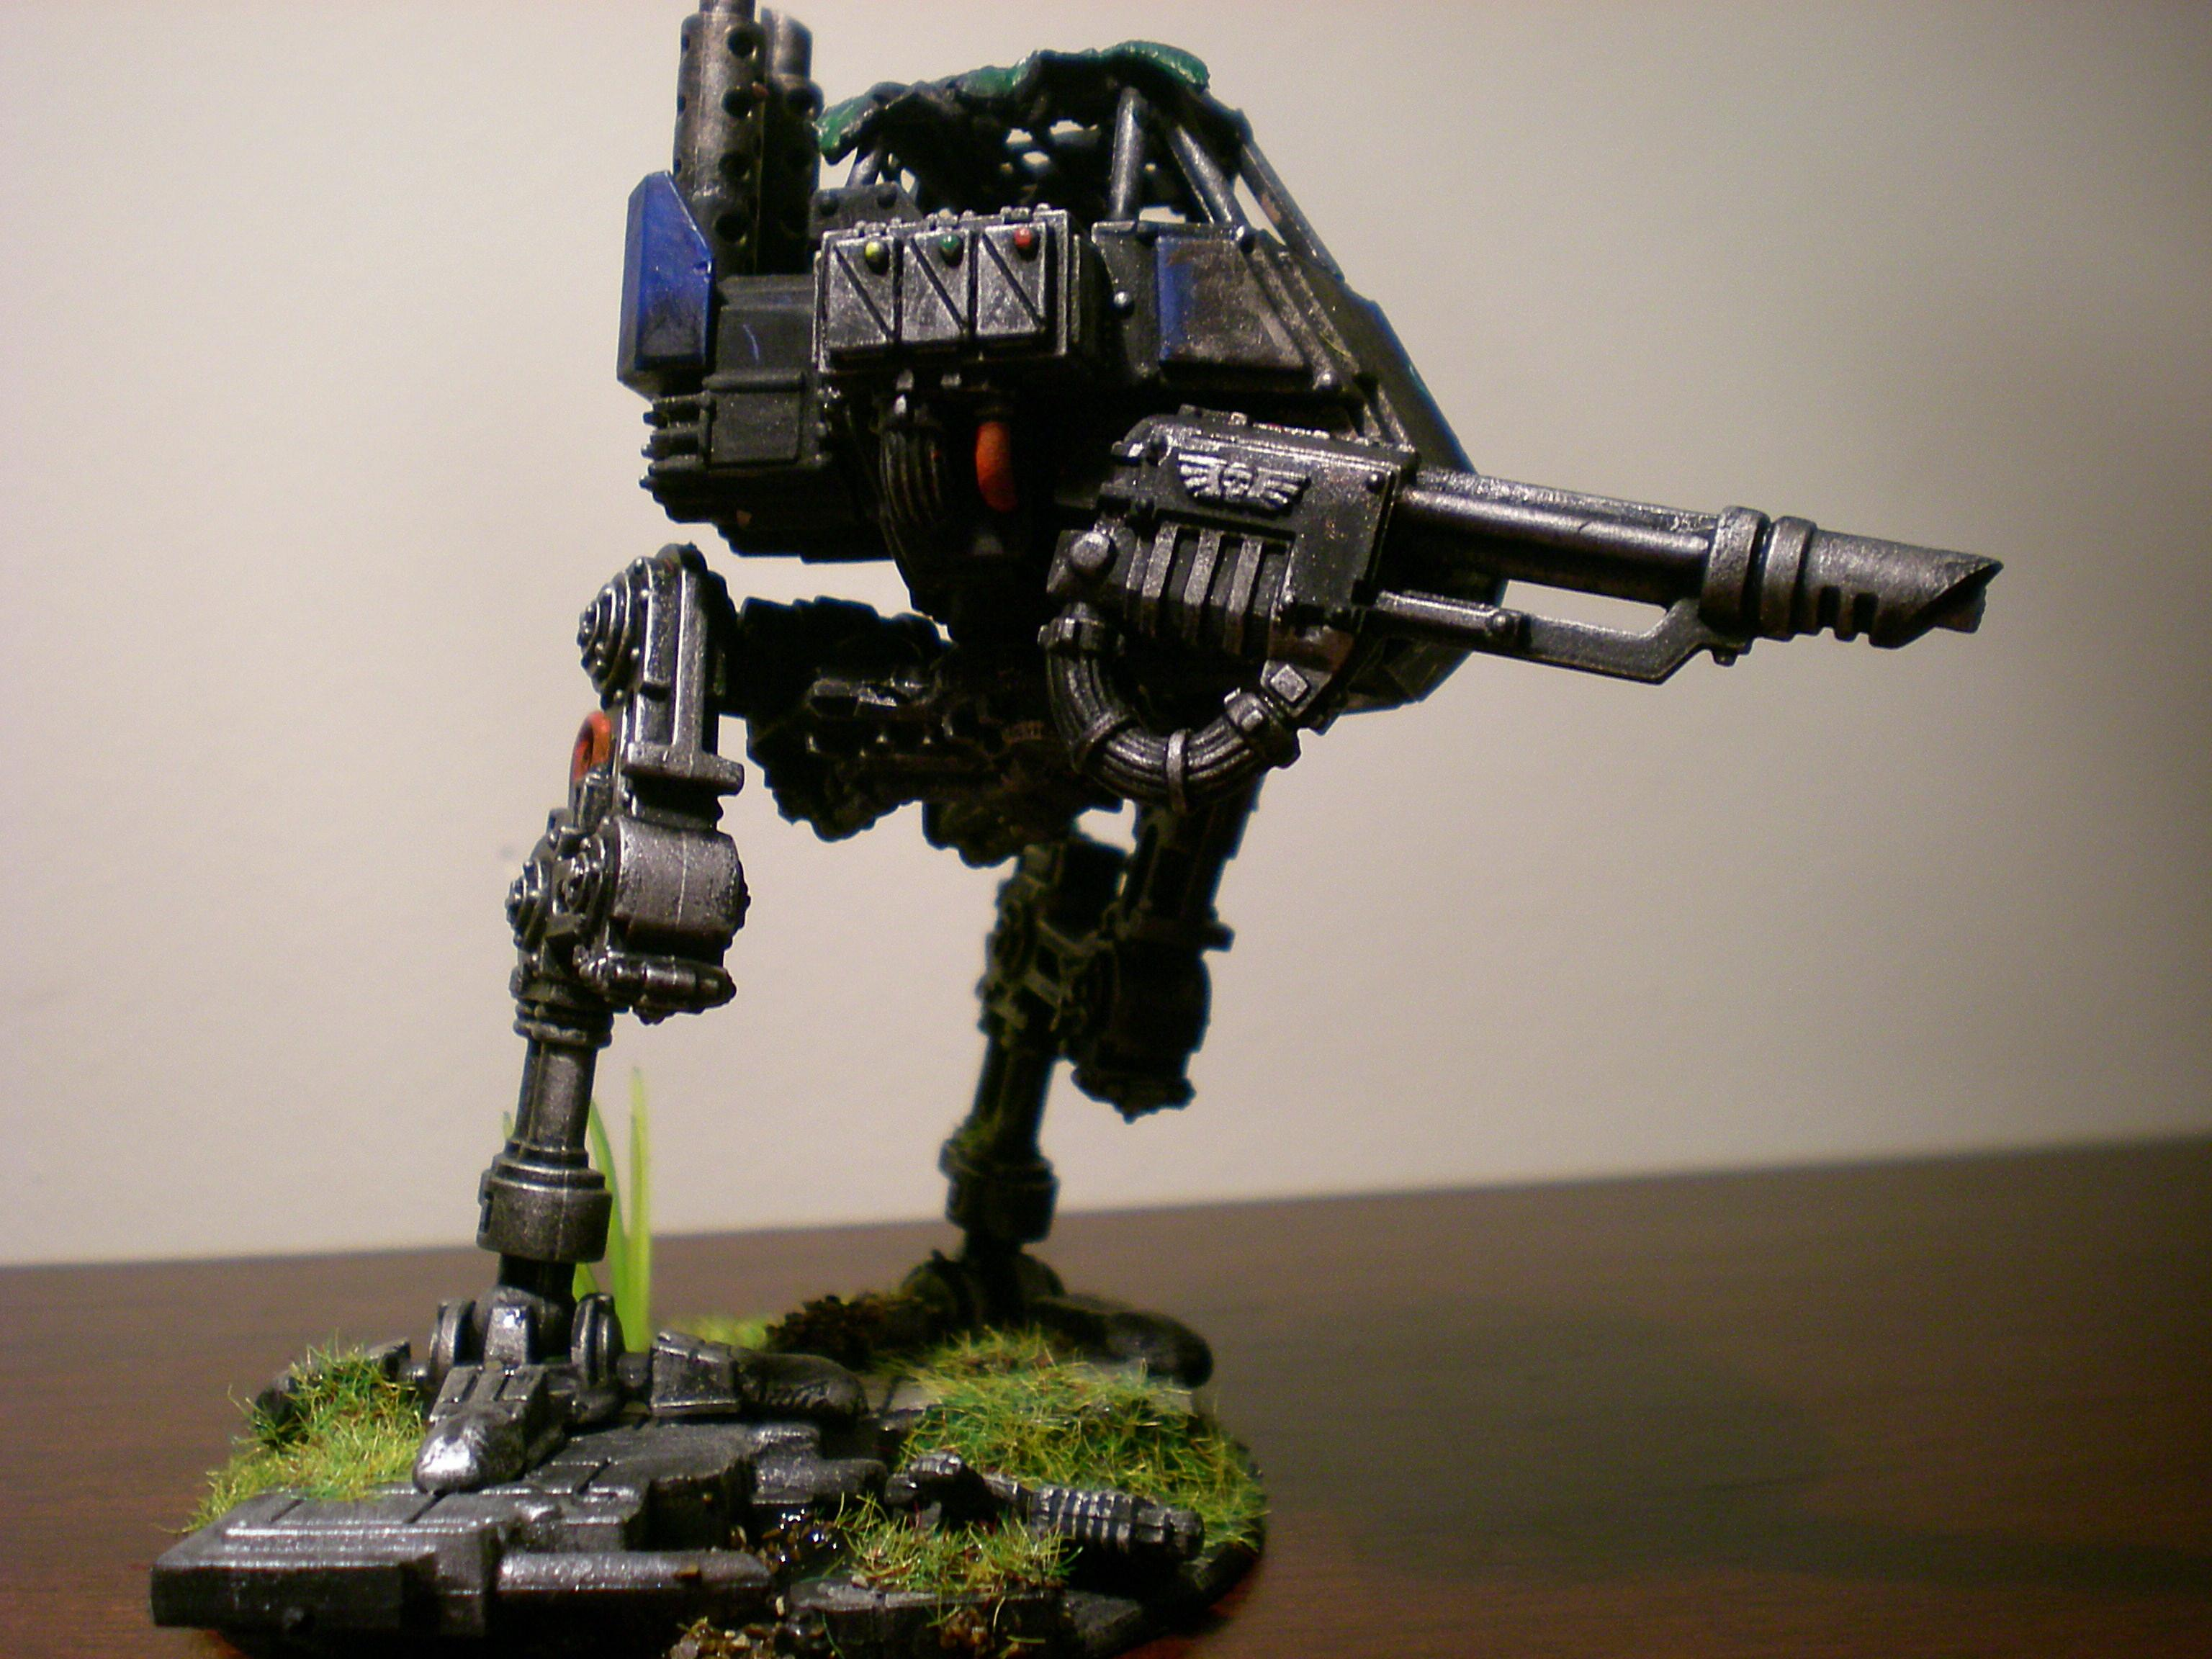 Sentinel, other side